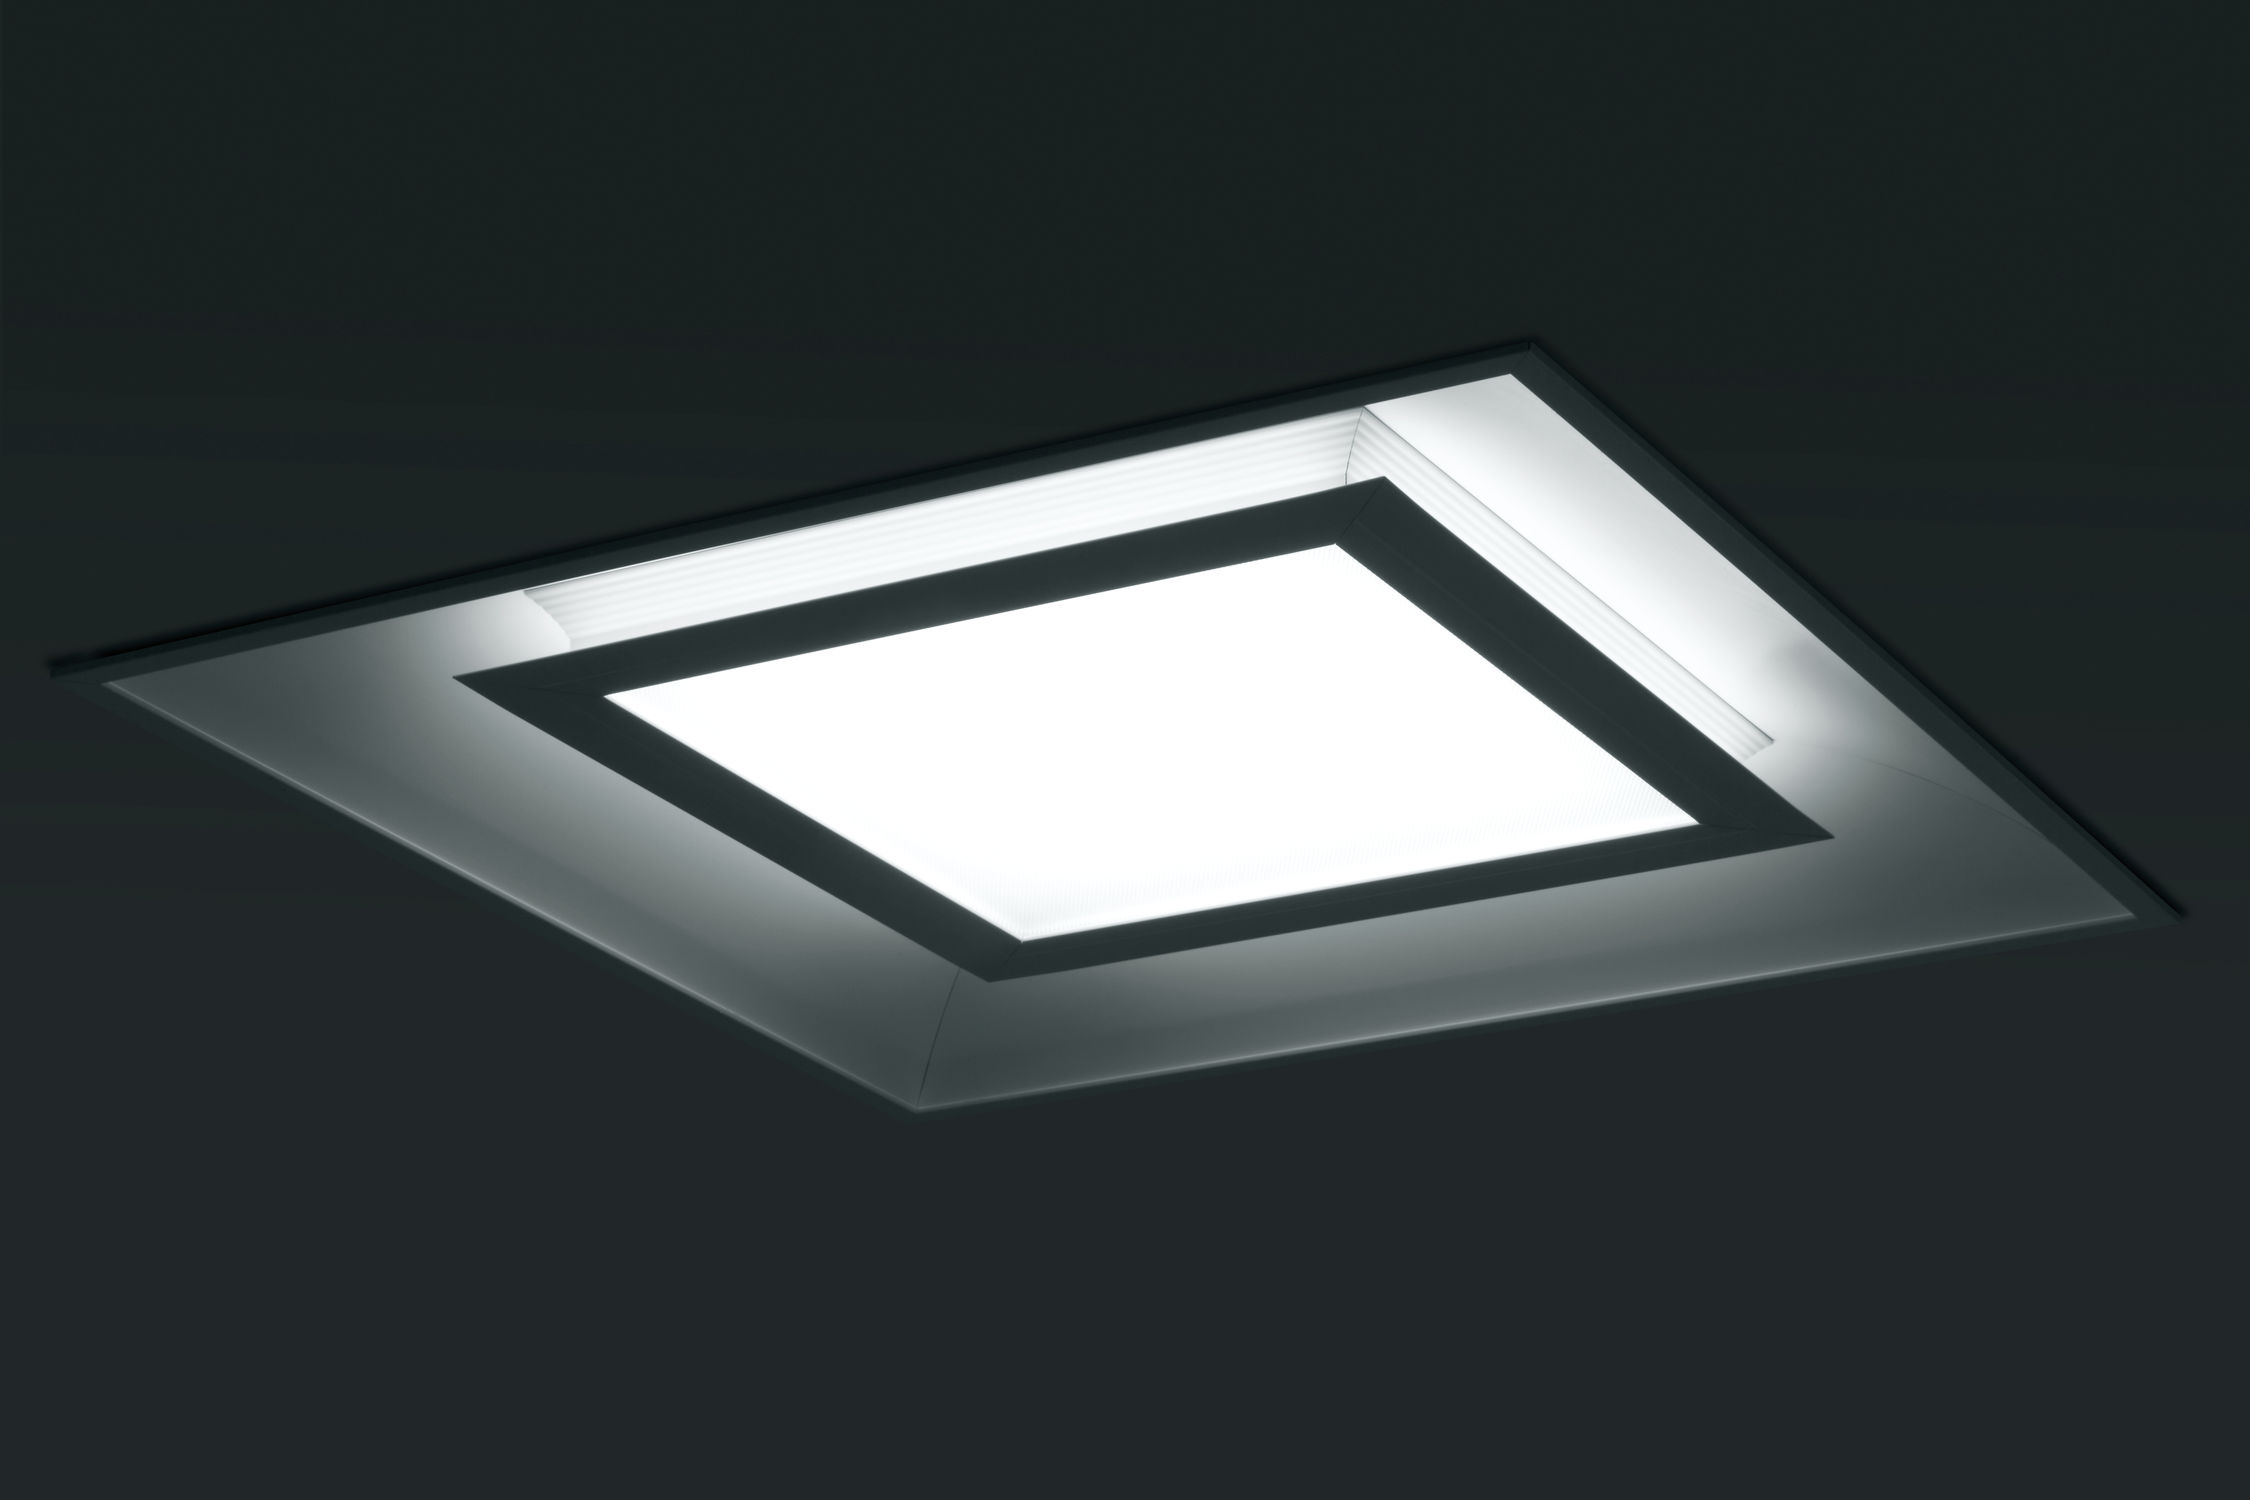 panel ceilings p recessed en white and depot inch in ceiling categories led kits fans light lighting round canada the home pot lights ultraslim